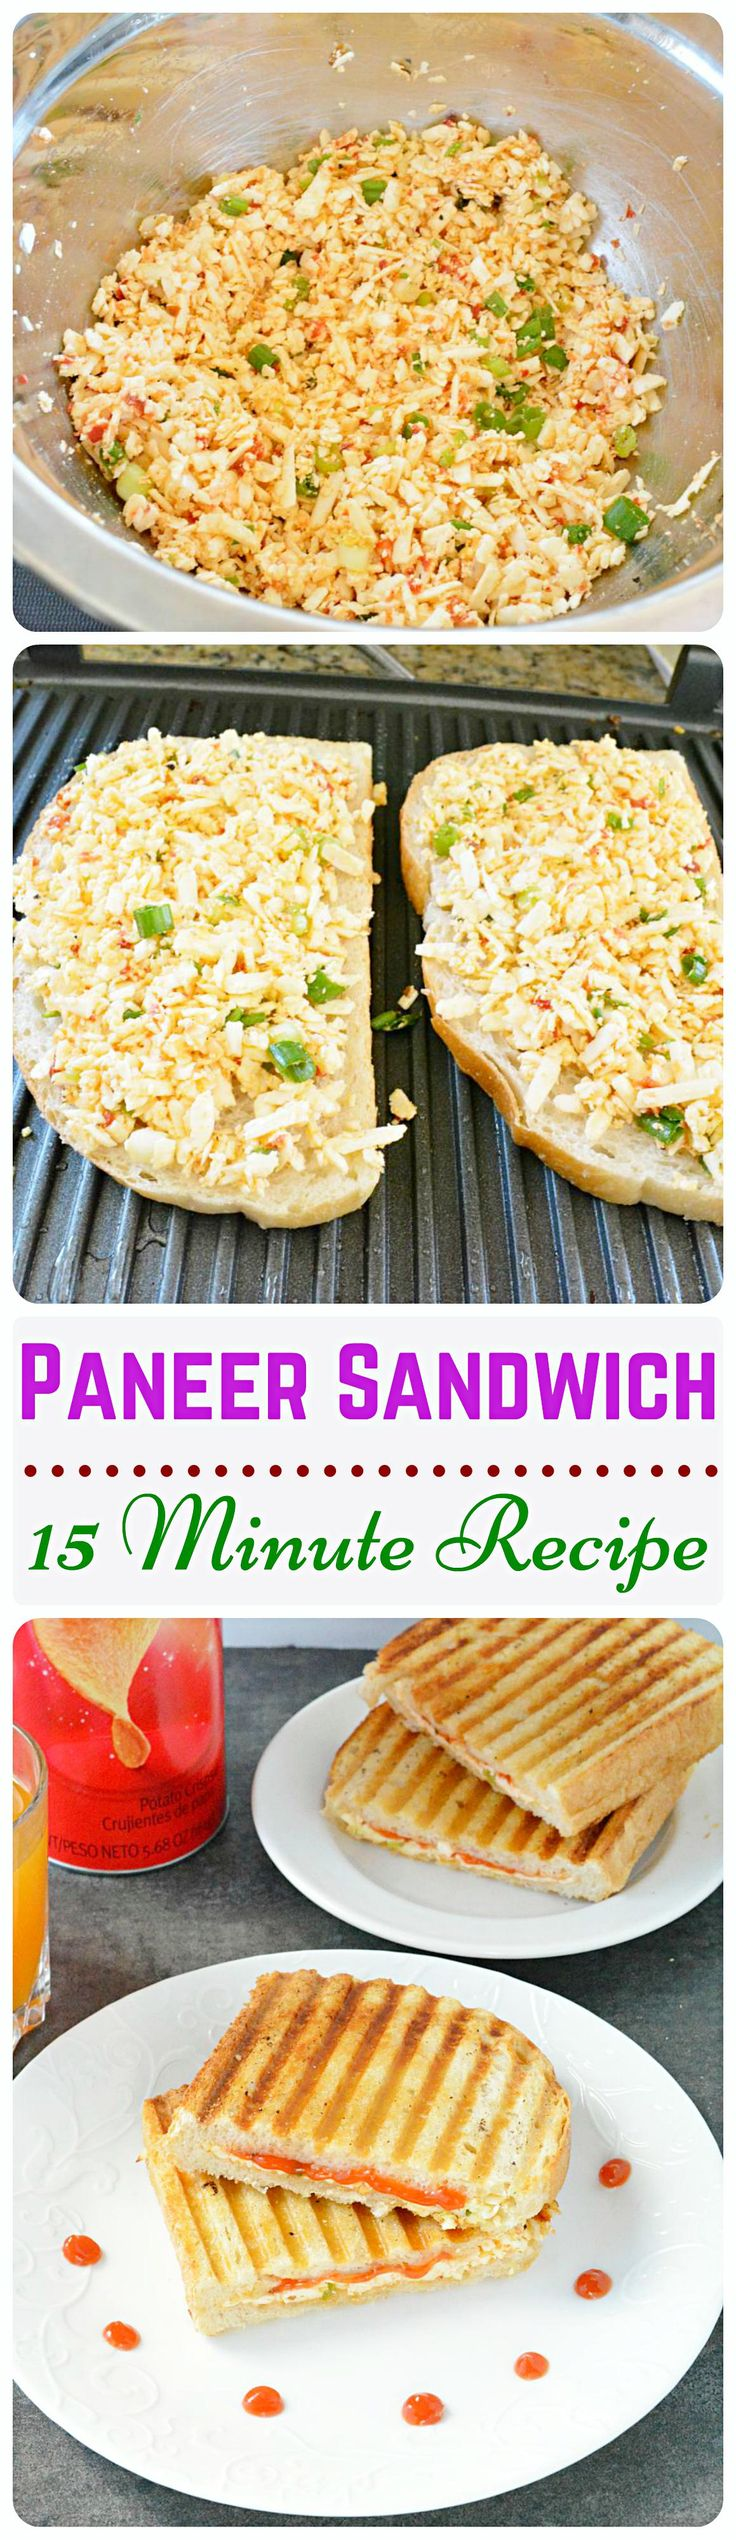 Spicy Paneer Sandwich - This spicy and flavorful sandwich is stuffed with homemade #paneer and spicy sauce. Paneer can be substituted with TOFU.